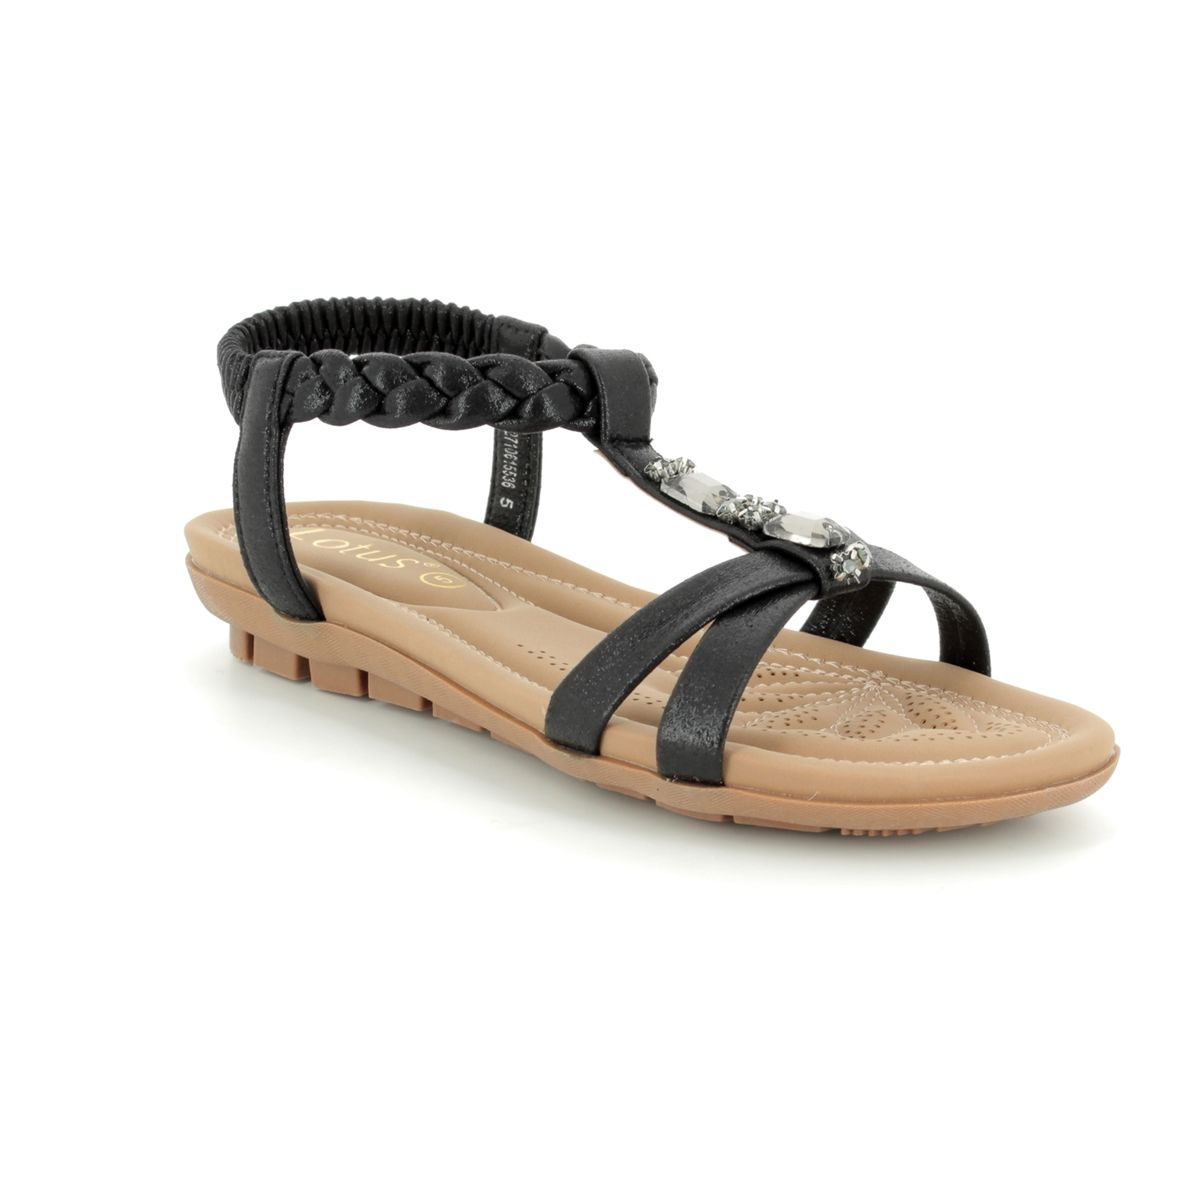 f03f5eaced40 Lotus Sandals - Black - 20411 30 ROVERTO